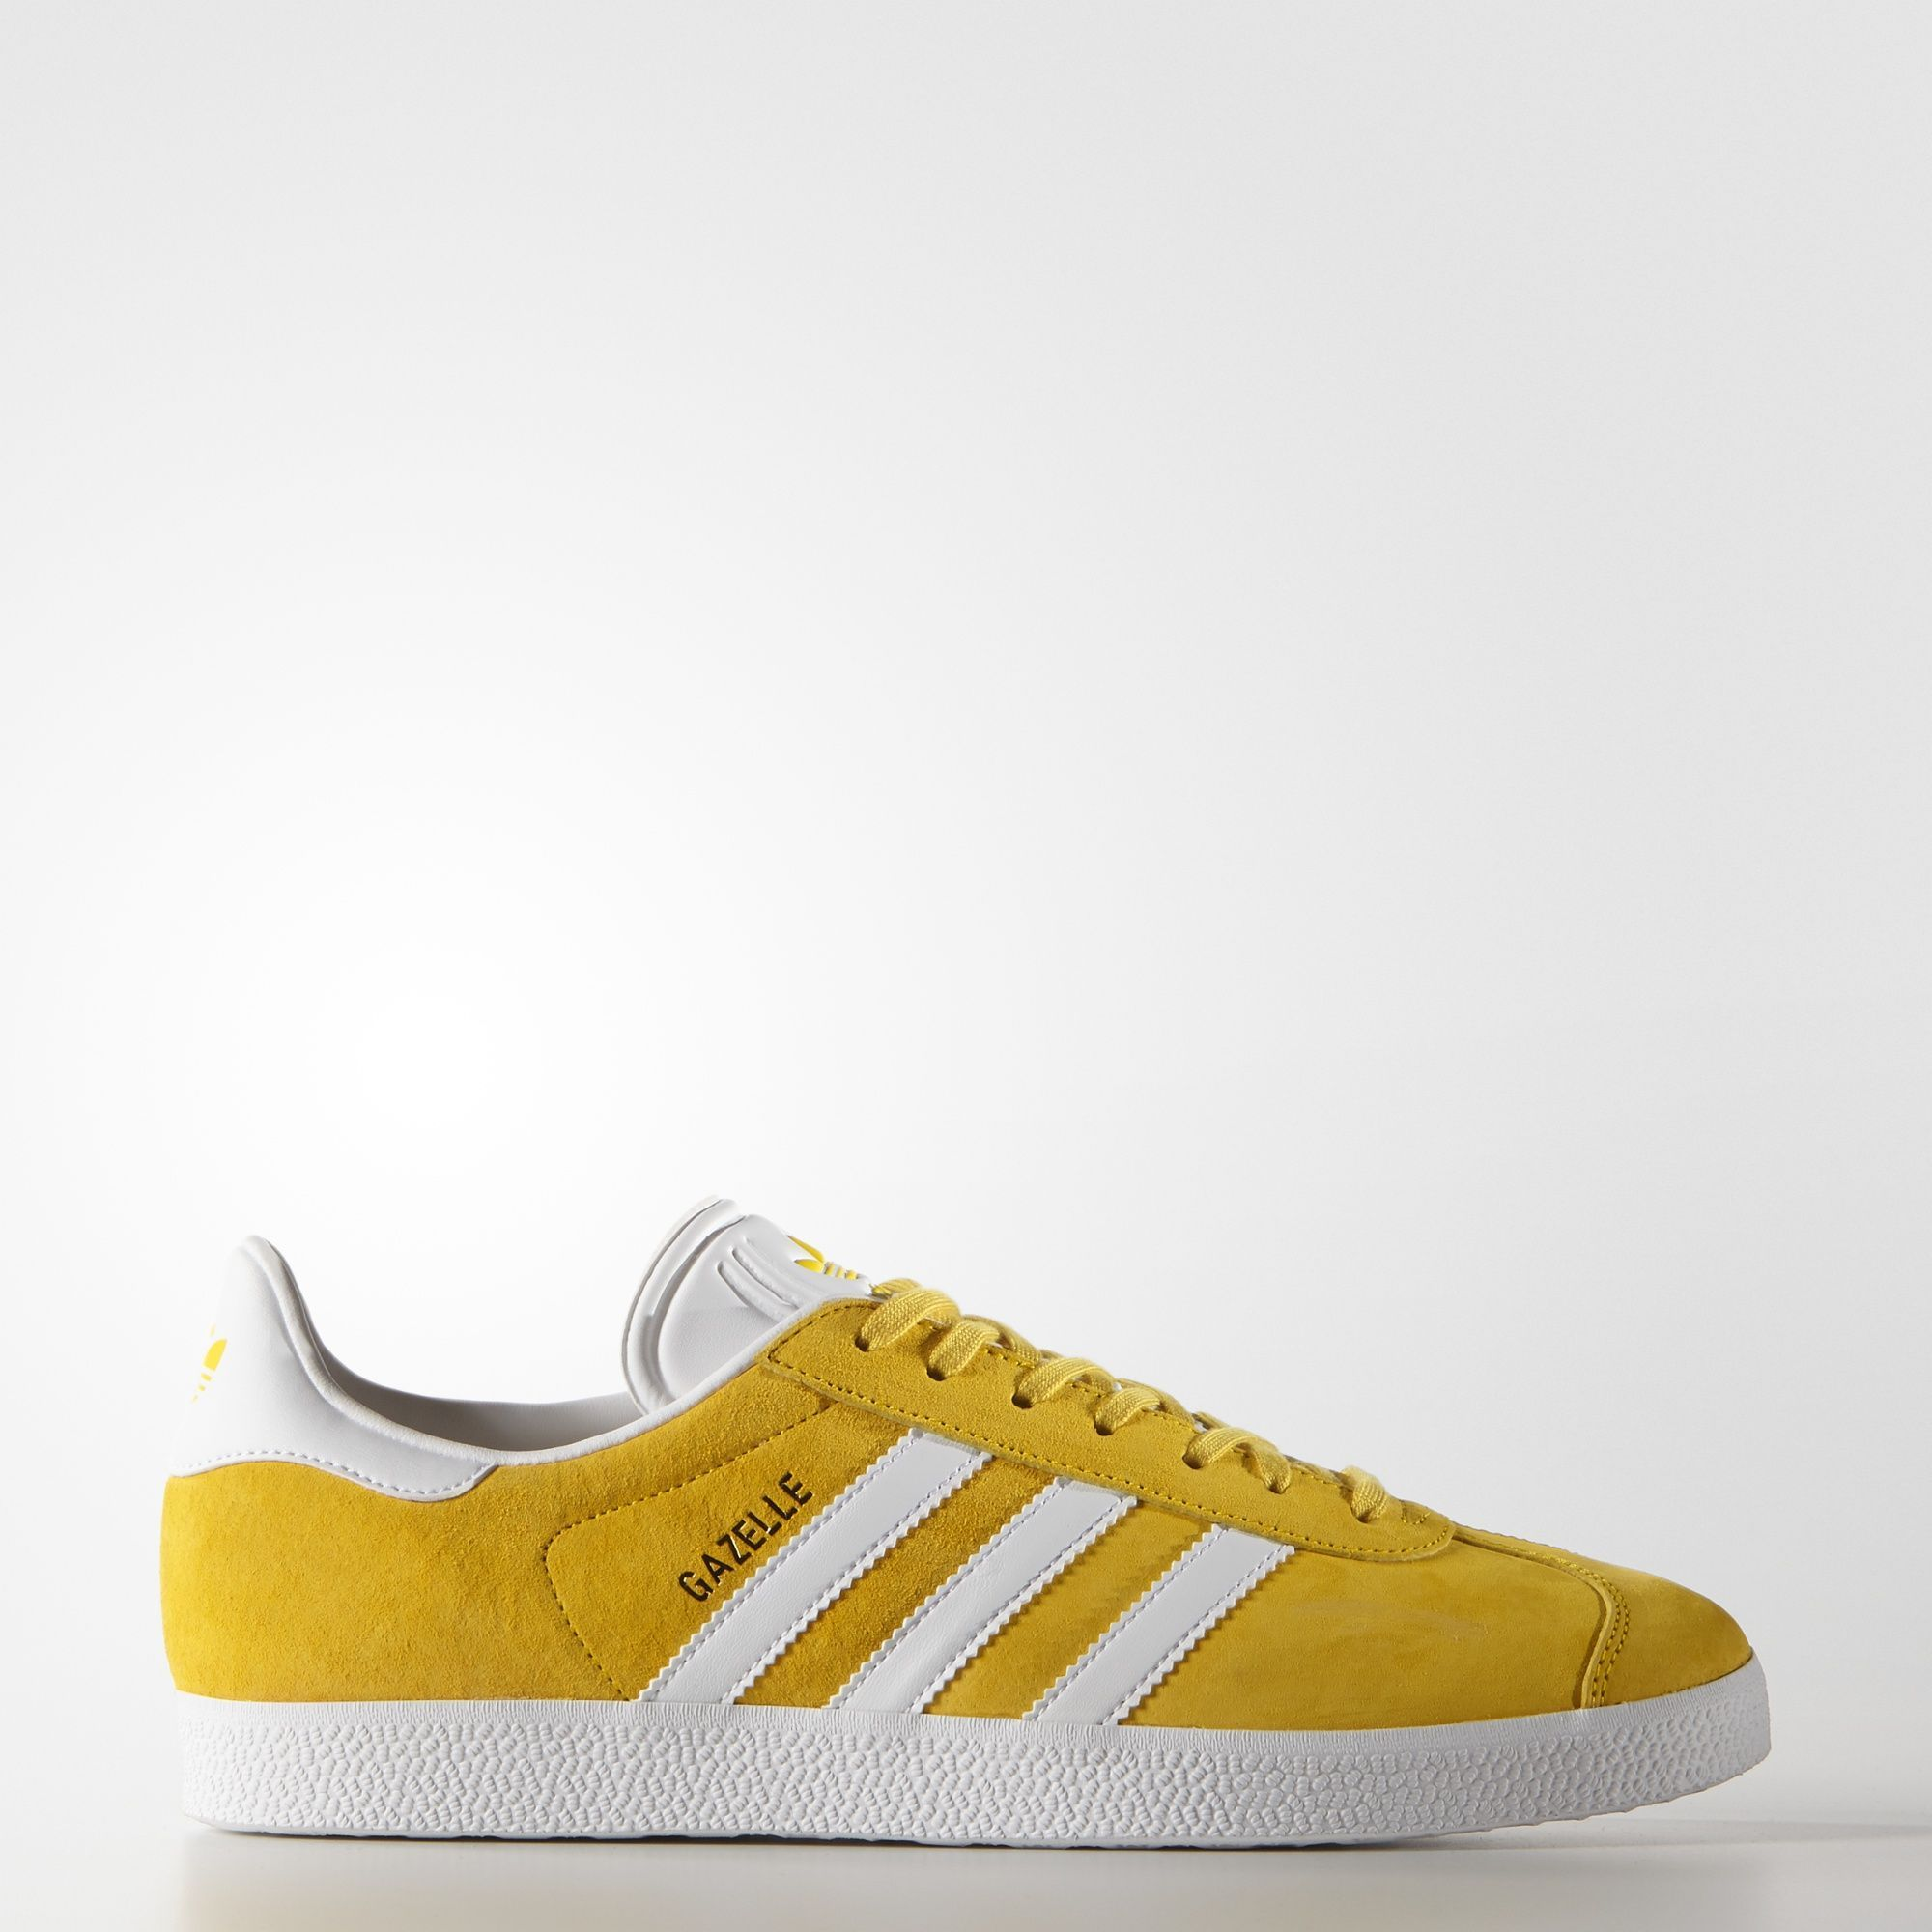 adidas - Gazelle Shoes yellow (pinned color) size 8.5